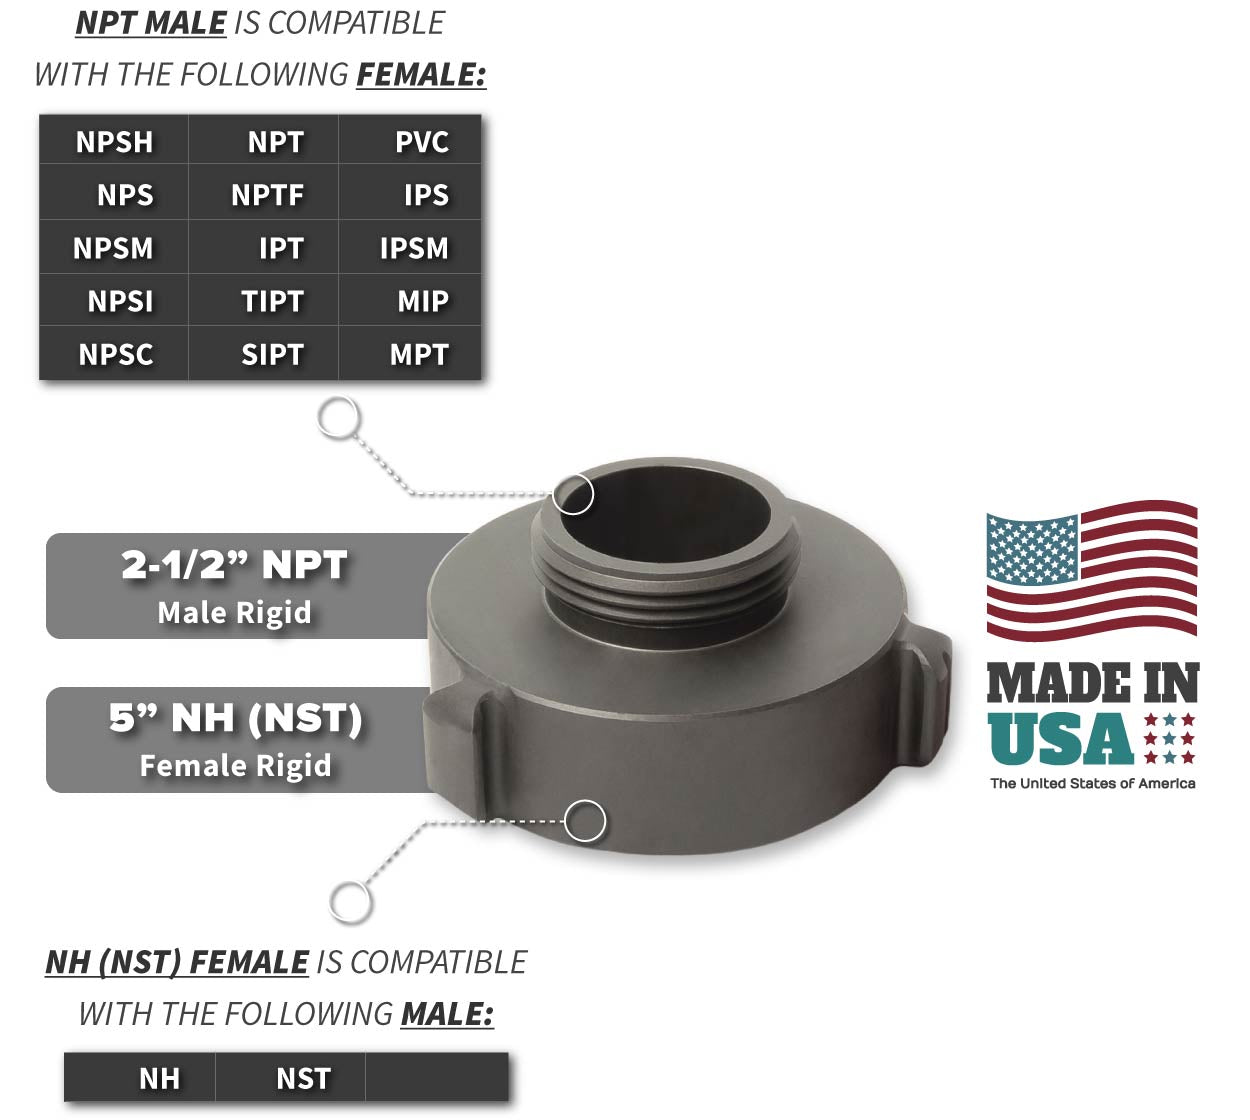 5 Inch NH-NST Female x 2.5 Inch NPT Male Compatibility Thread Chart